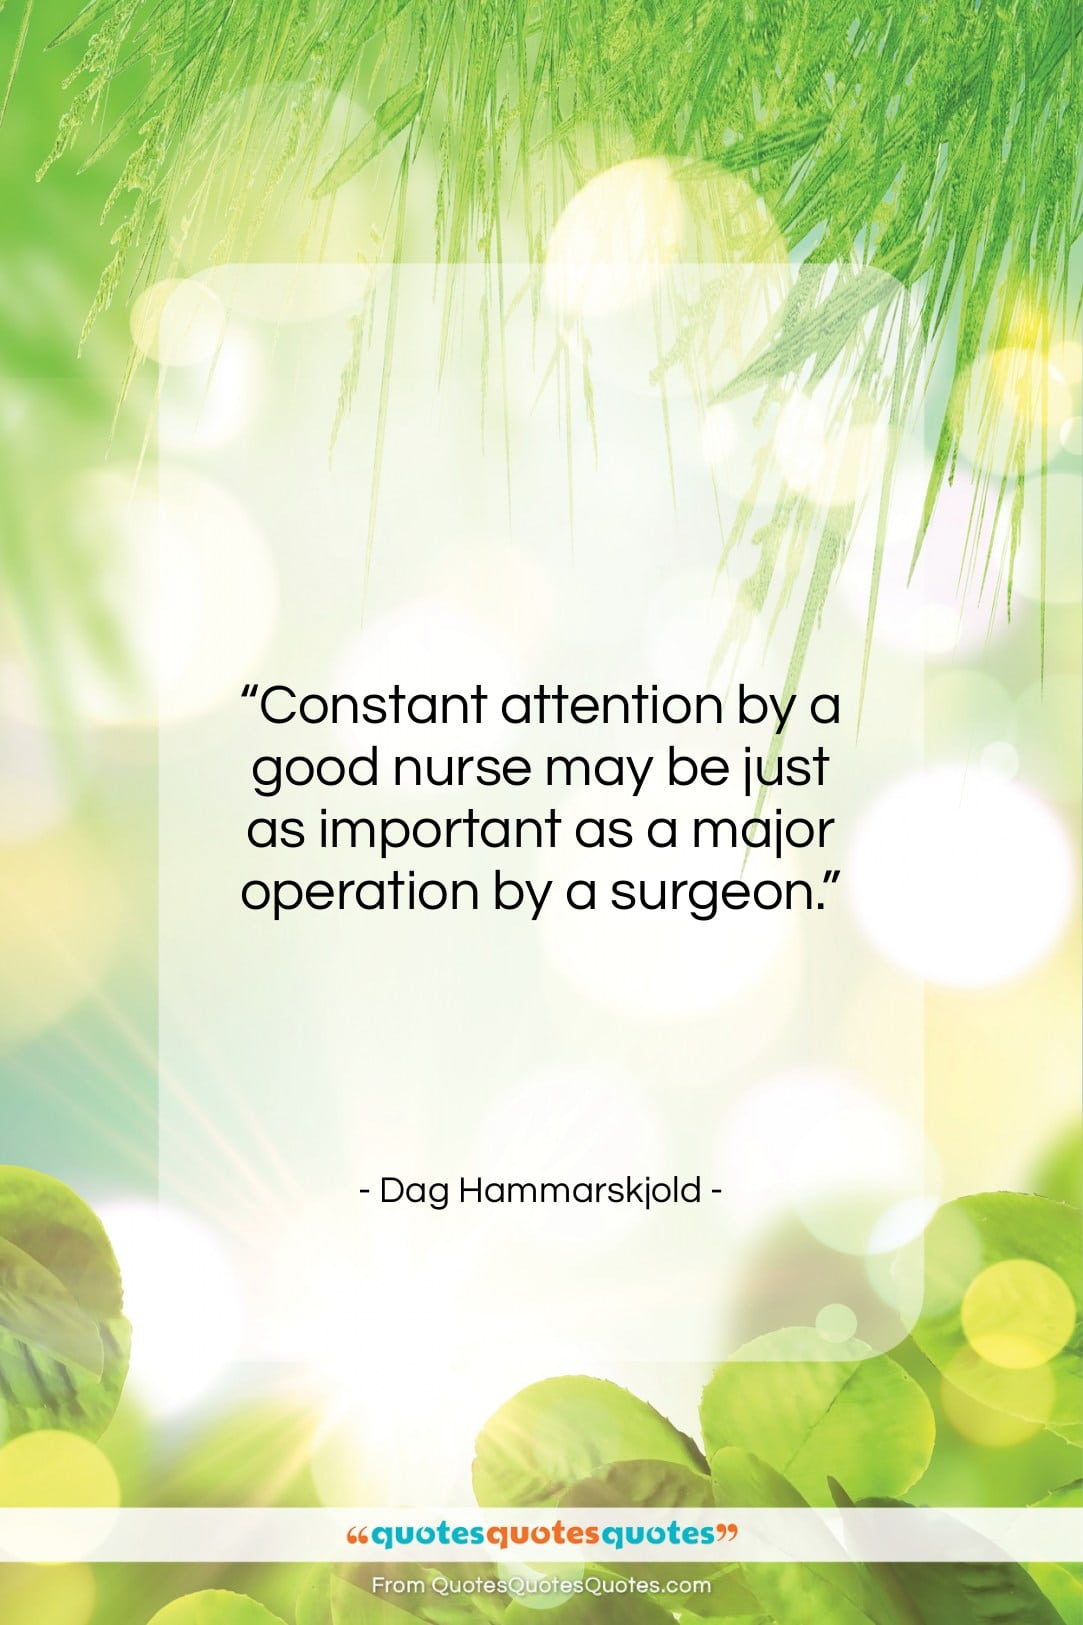 """Dag Hammarskjold quote: """"Constant attention by a good nurse may…""""- at QuotesQuotesQuotes.com"""